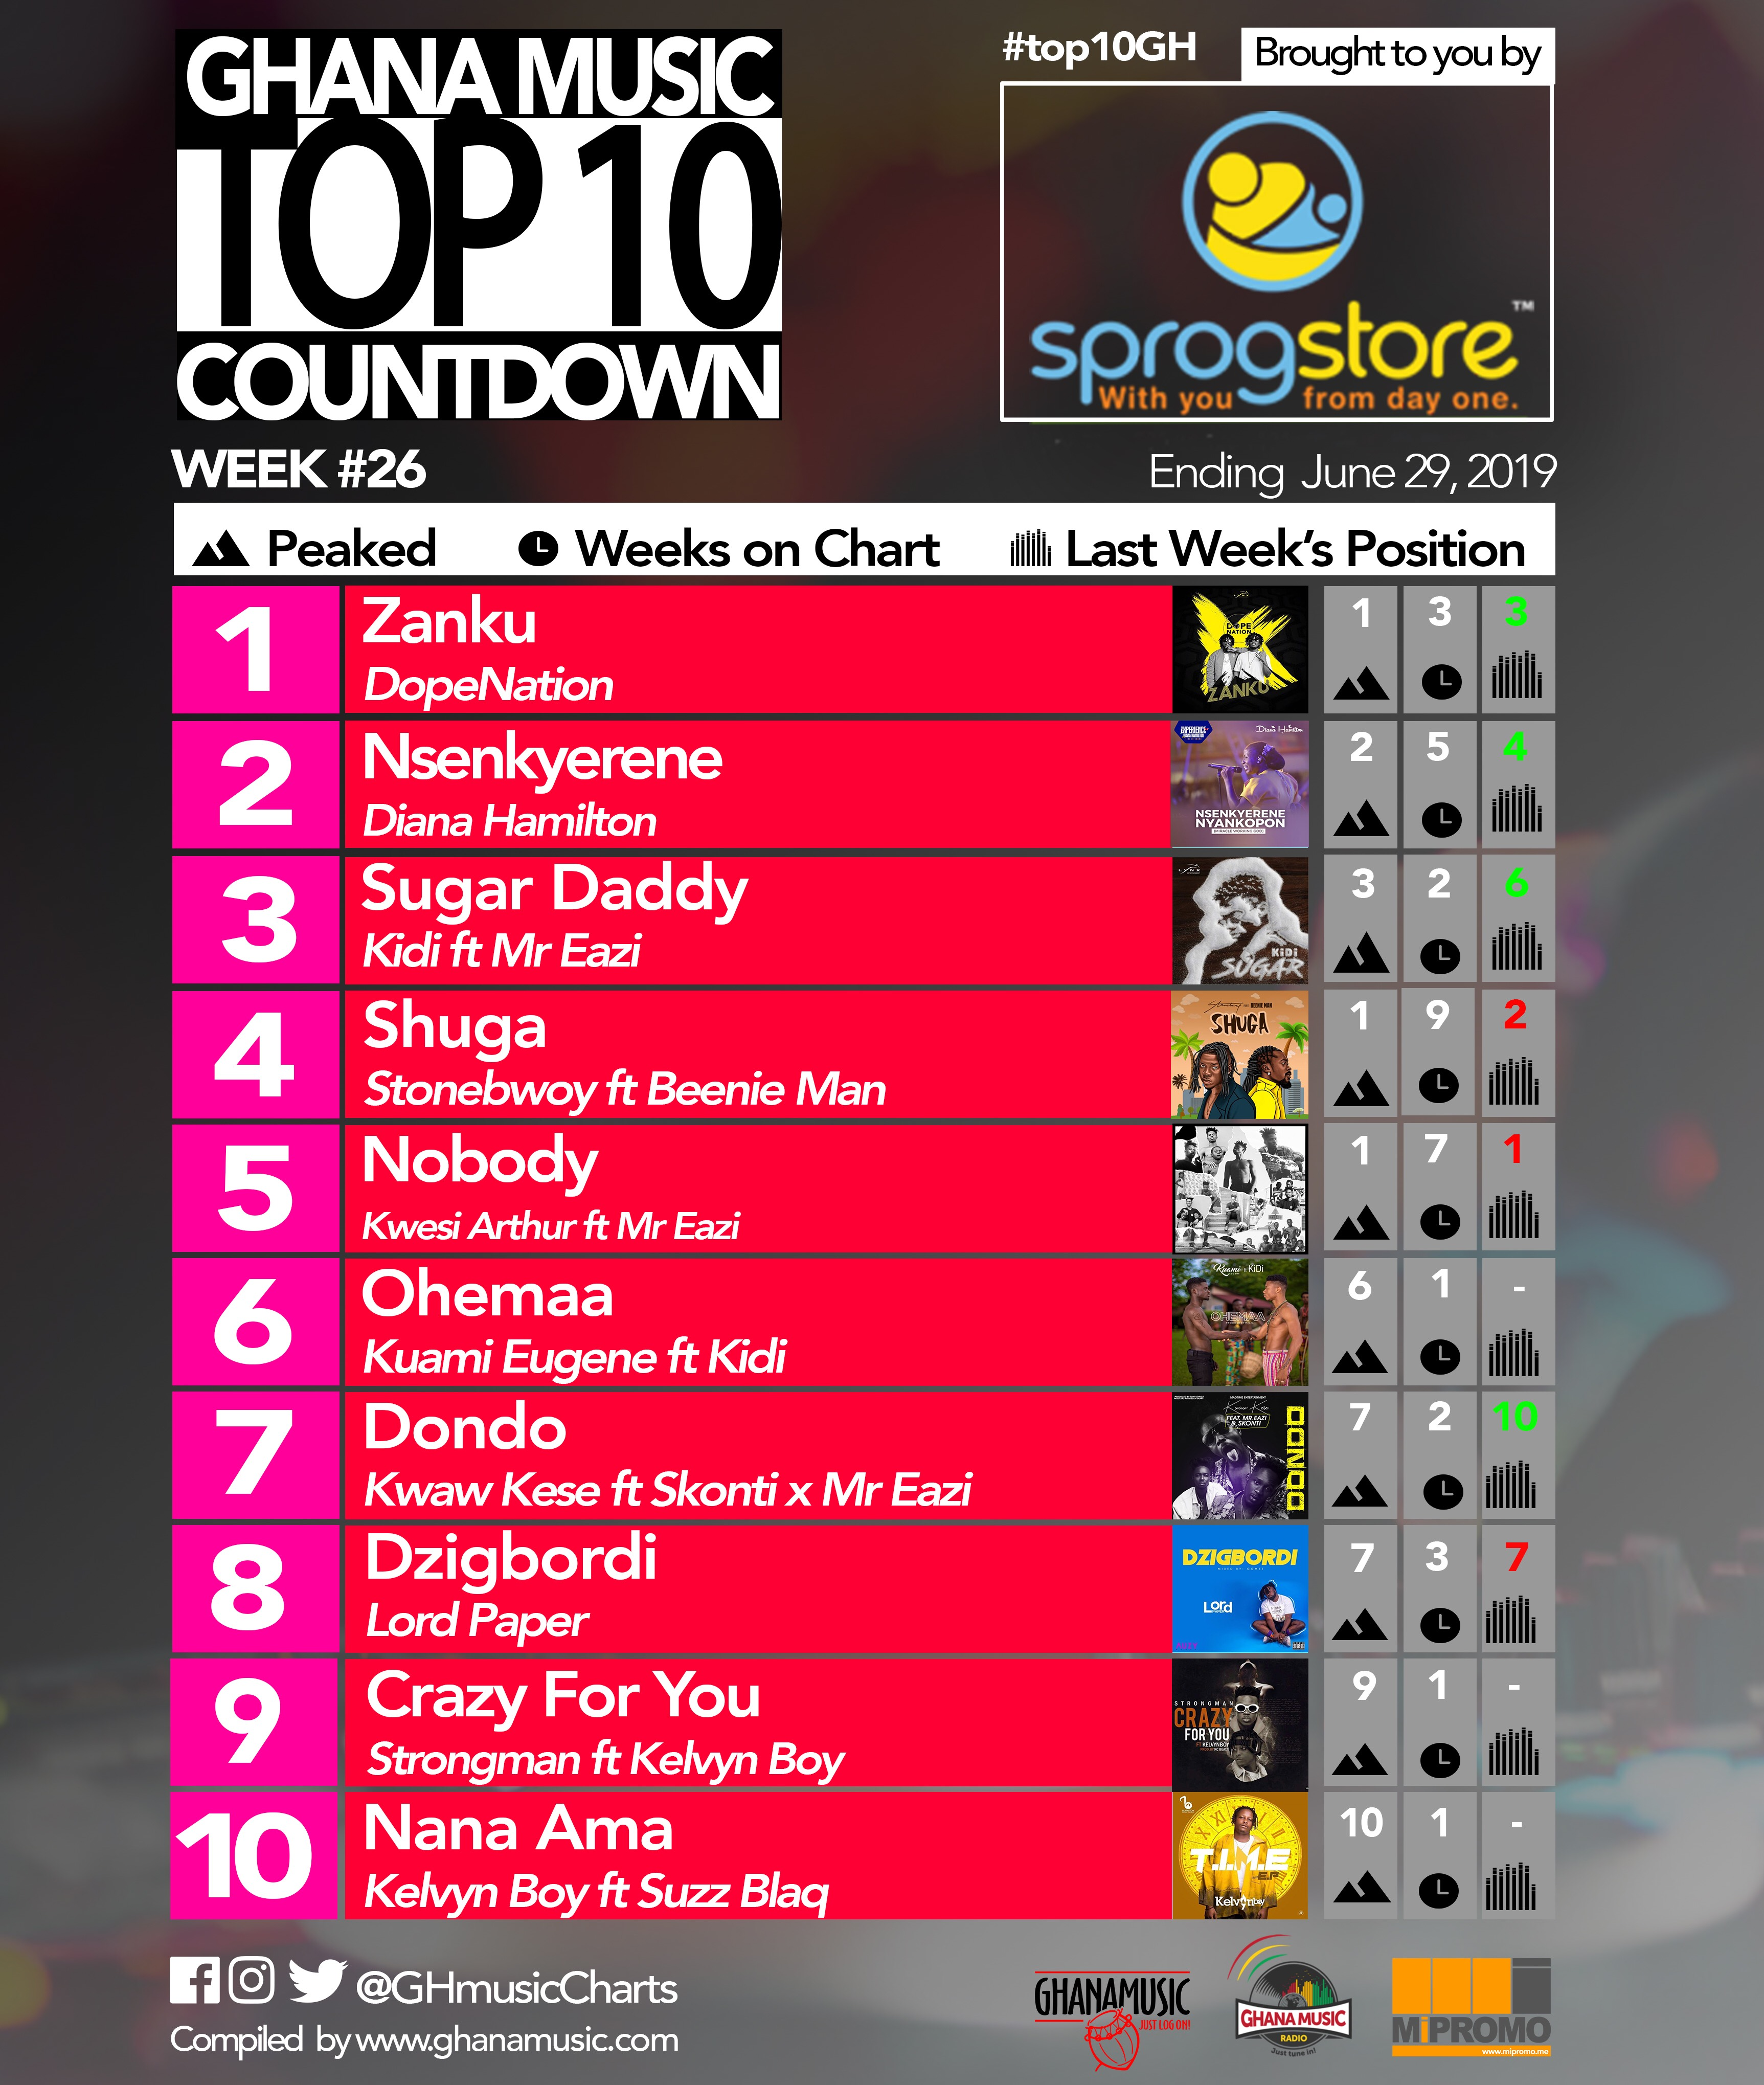 2019 Week 26: Ghana Music Top 10 Countdown